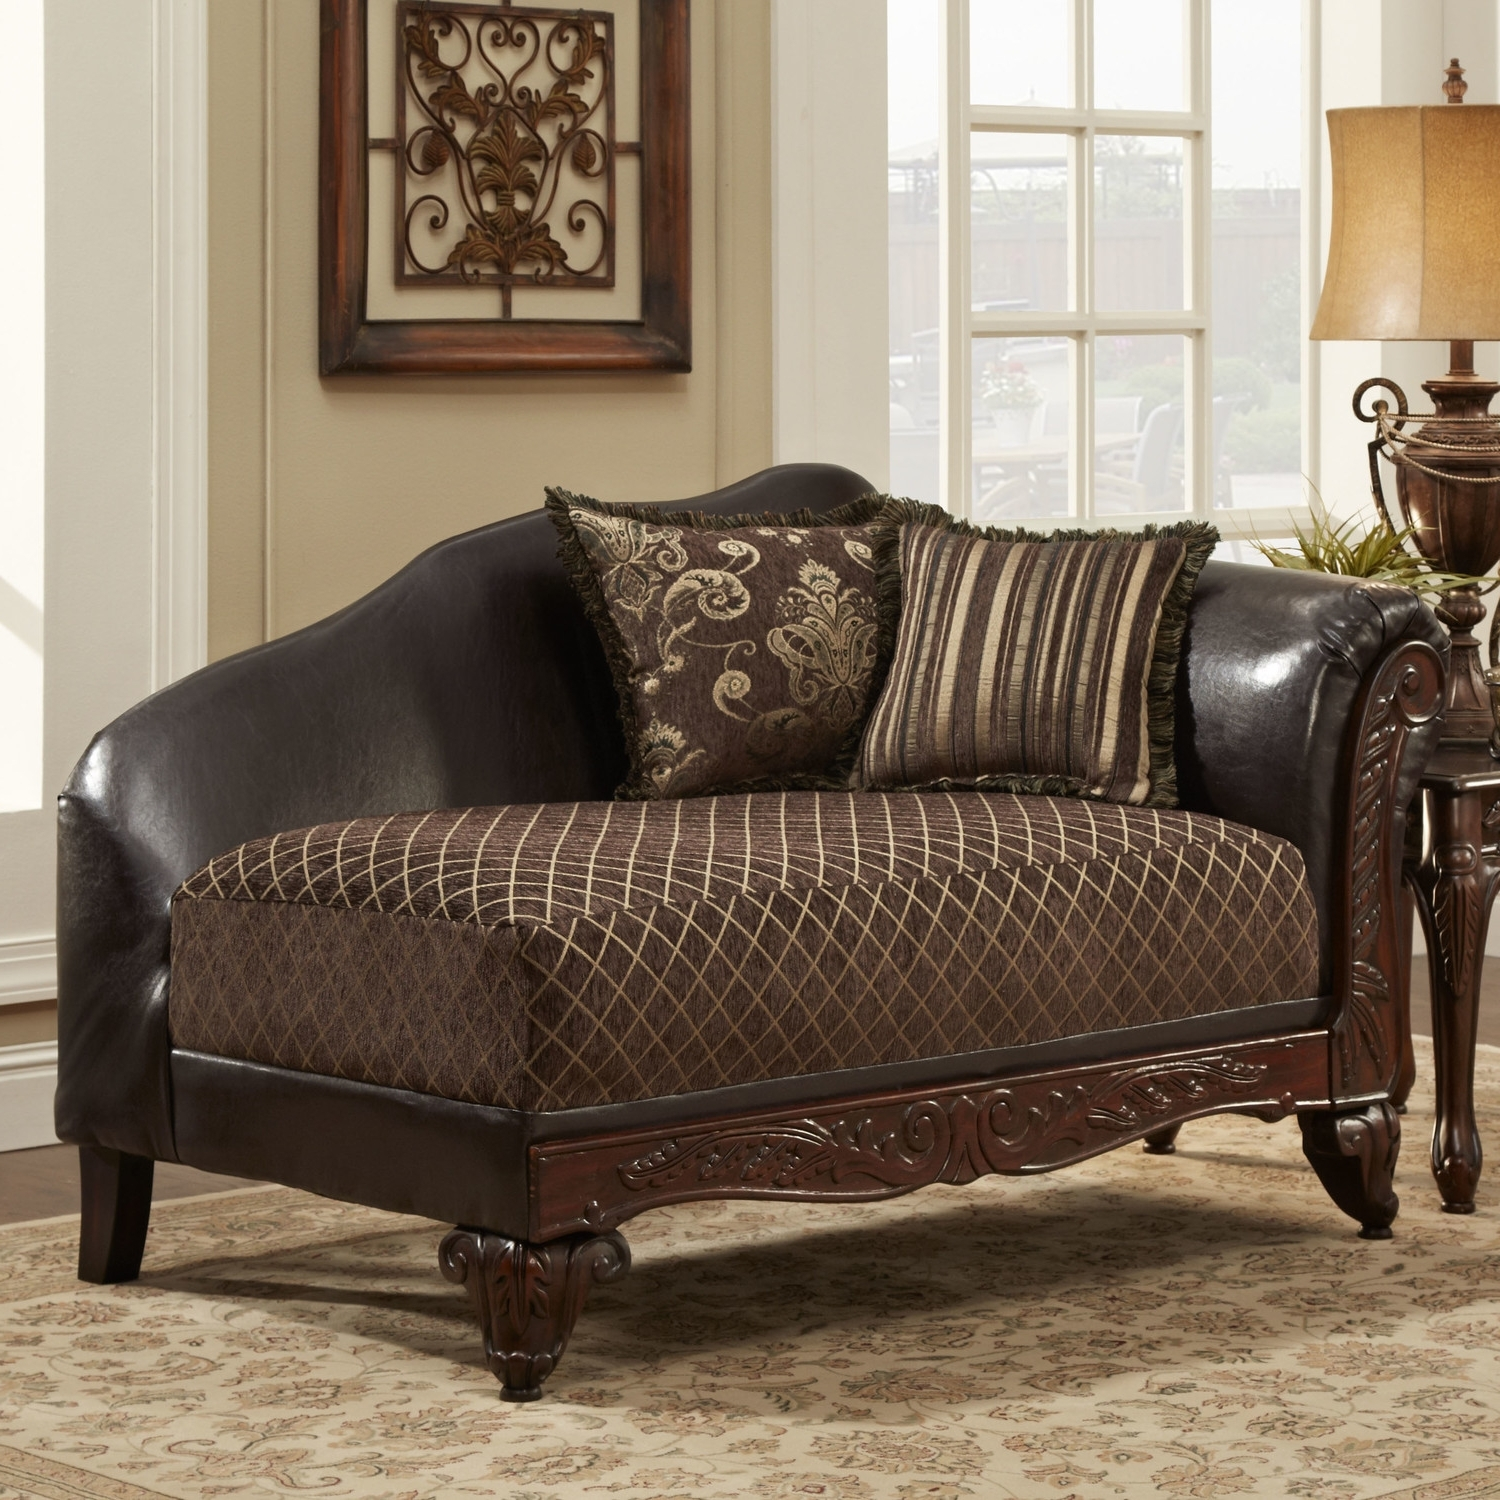 Best And Newest Inspirational Chaise Lounge Chairs For Bedroom (39 Photos Within Sofa Lounge Chairs (View 2 of 15)